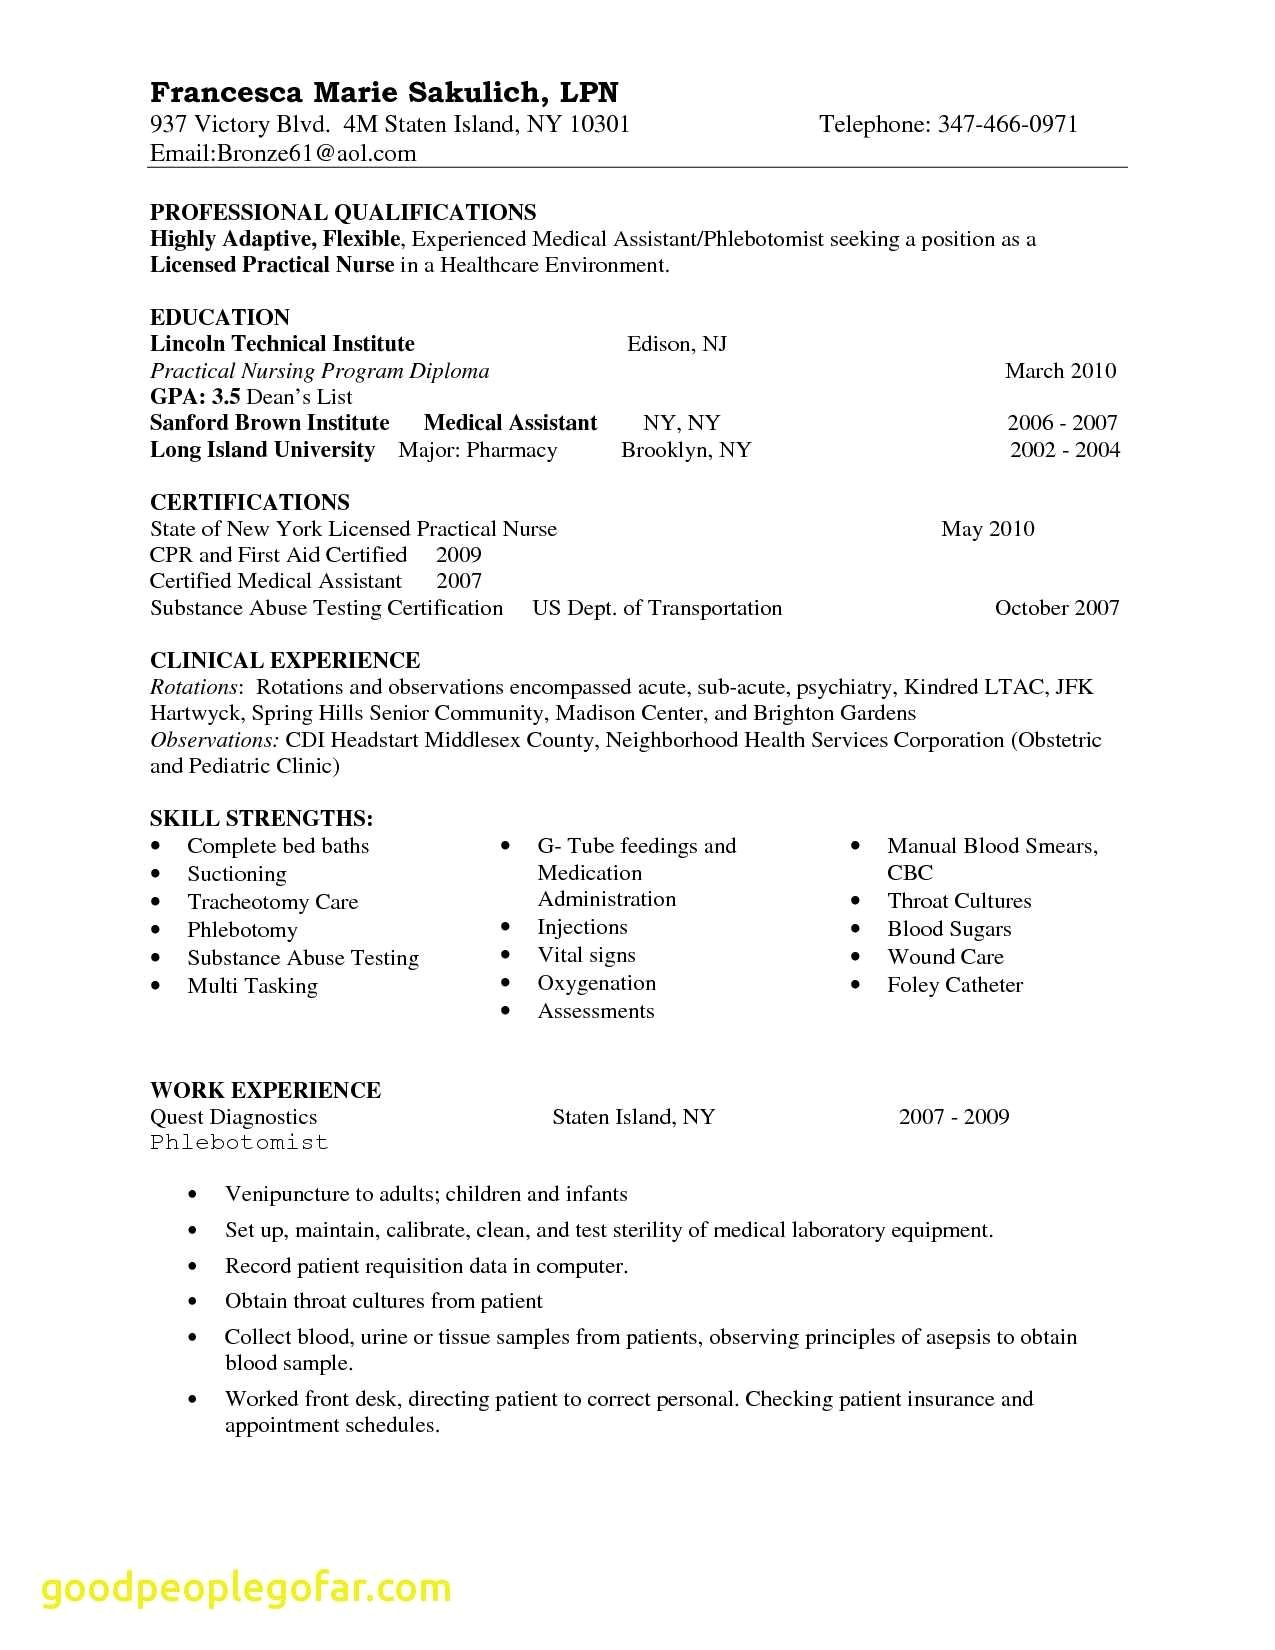 Customer Service Experience Resume - 45 Fresh Customer Service Resume Objective